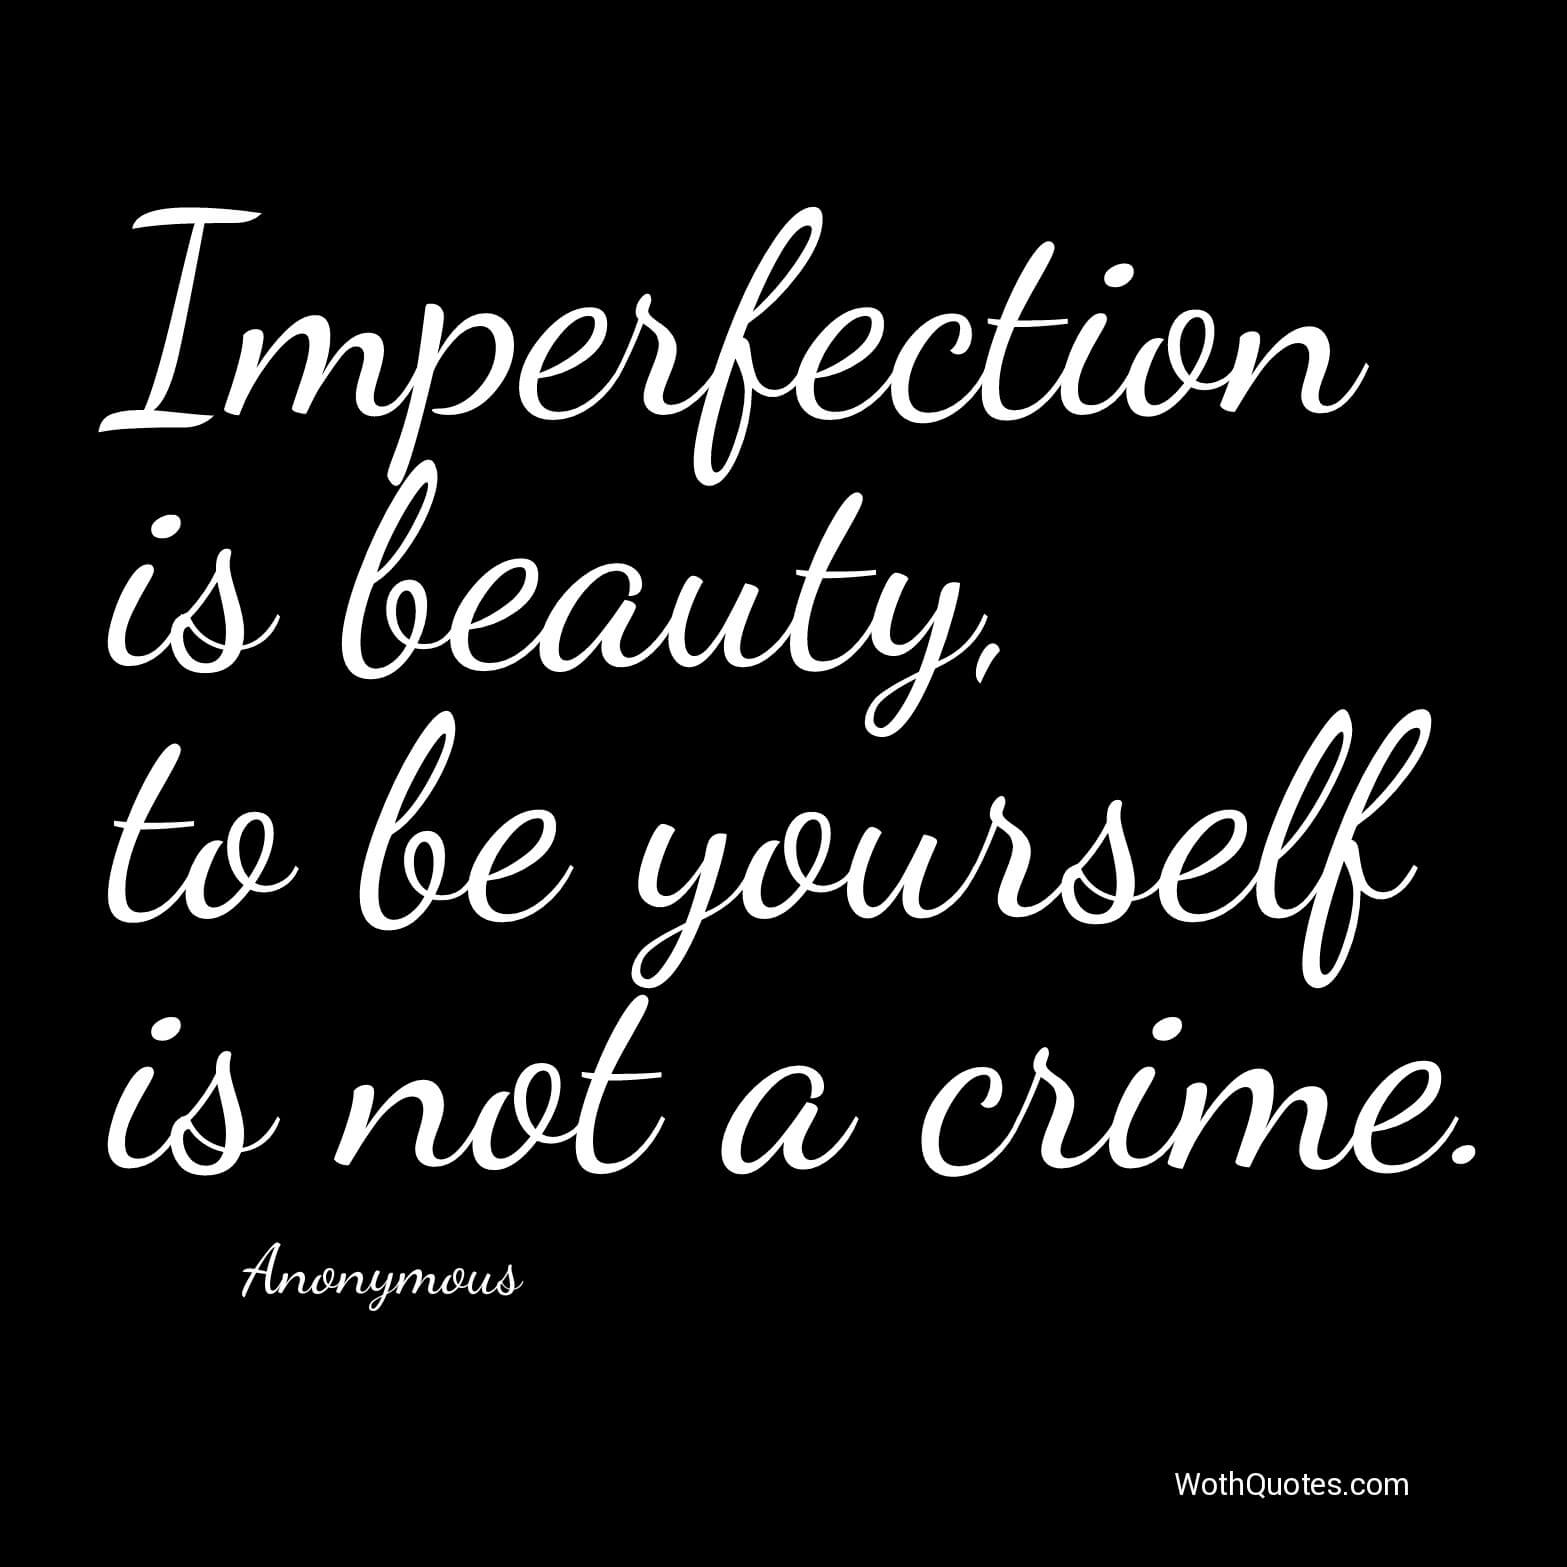 Imperfect Love Quotes Imperfection Quotes  Wothquotes Collection